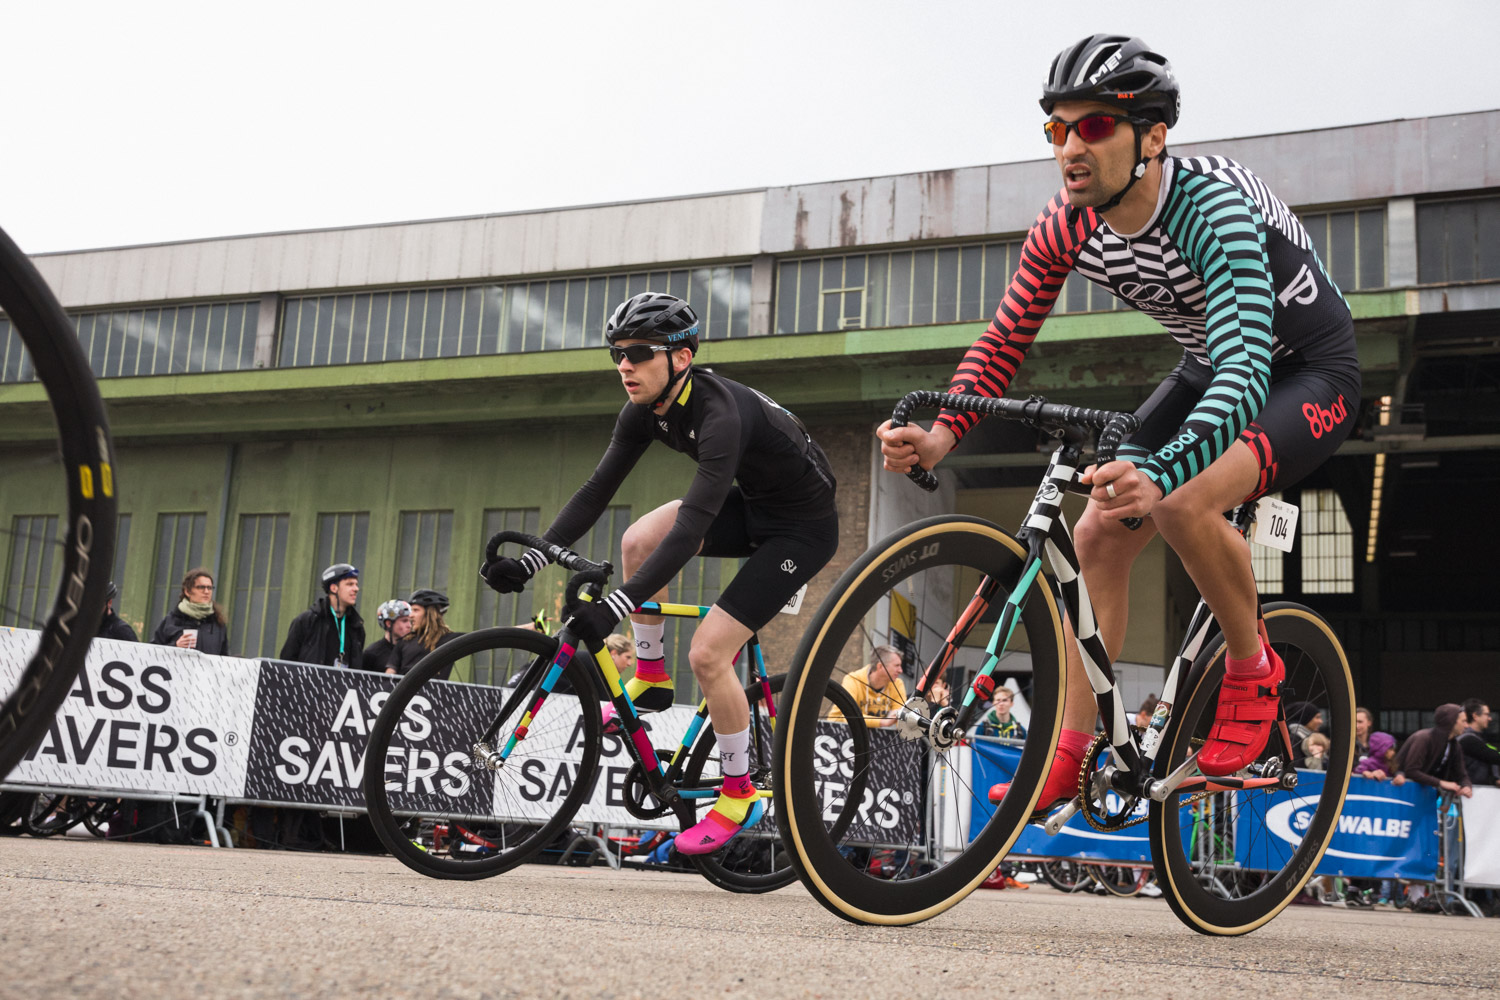 8brcrit 8bar rookies fixed gear crit 7 - Fast, Faster, 8bar crit 2018 - the race review!